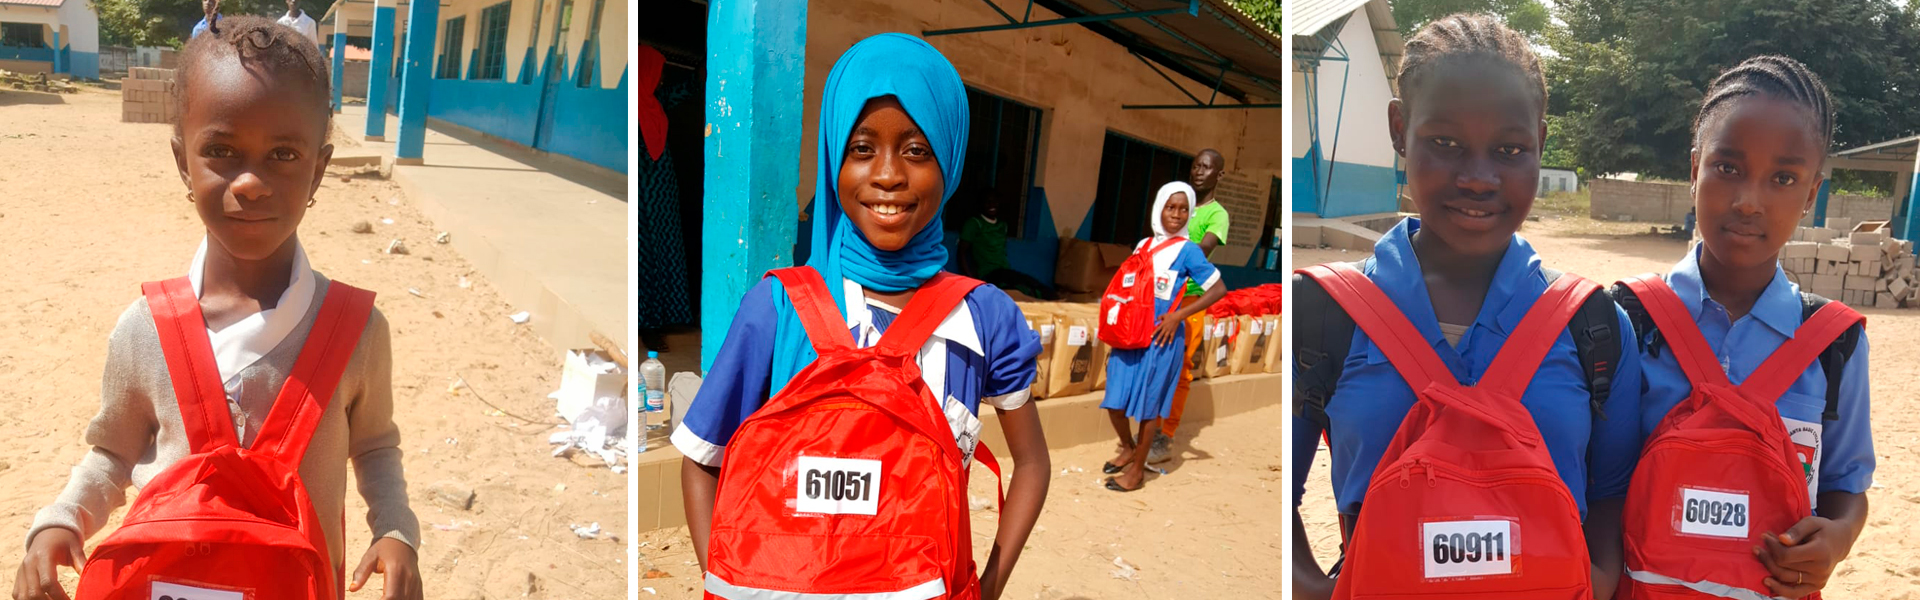 The Gambia School Bag Gallery 2